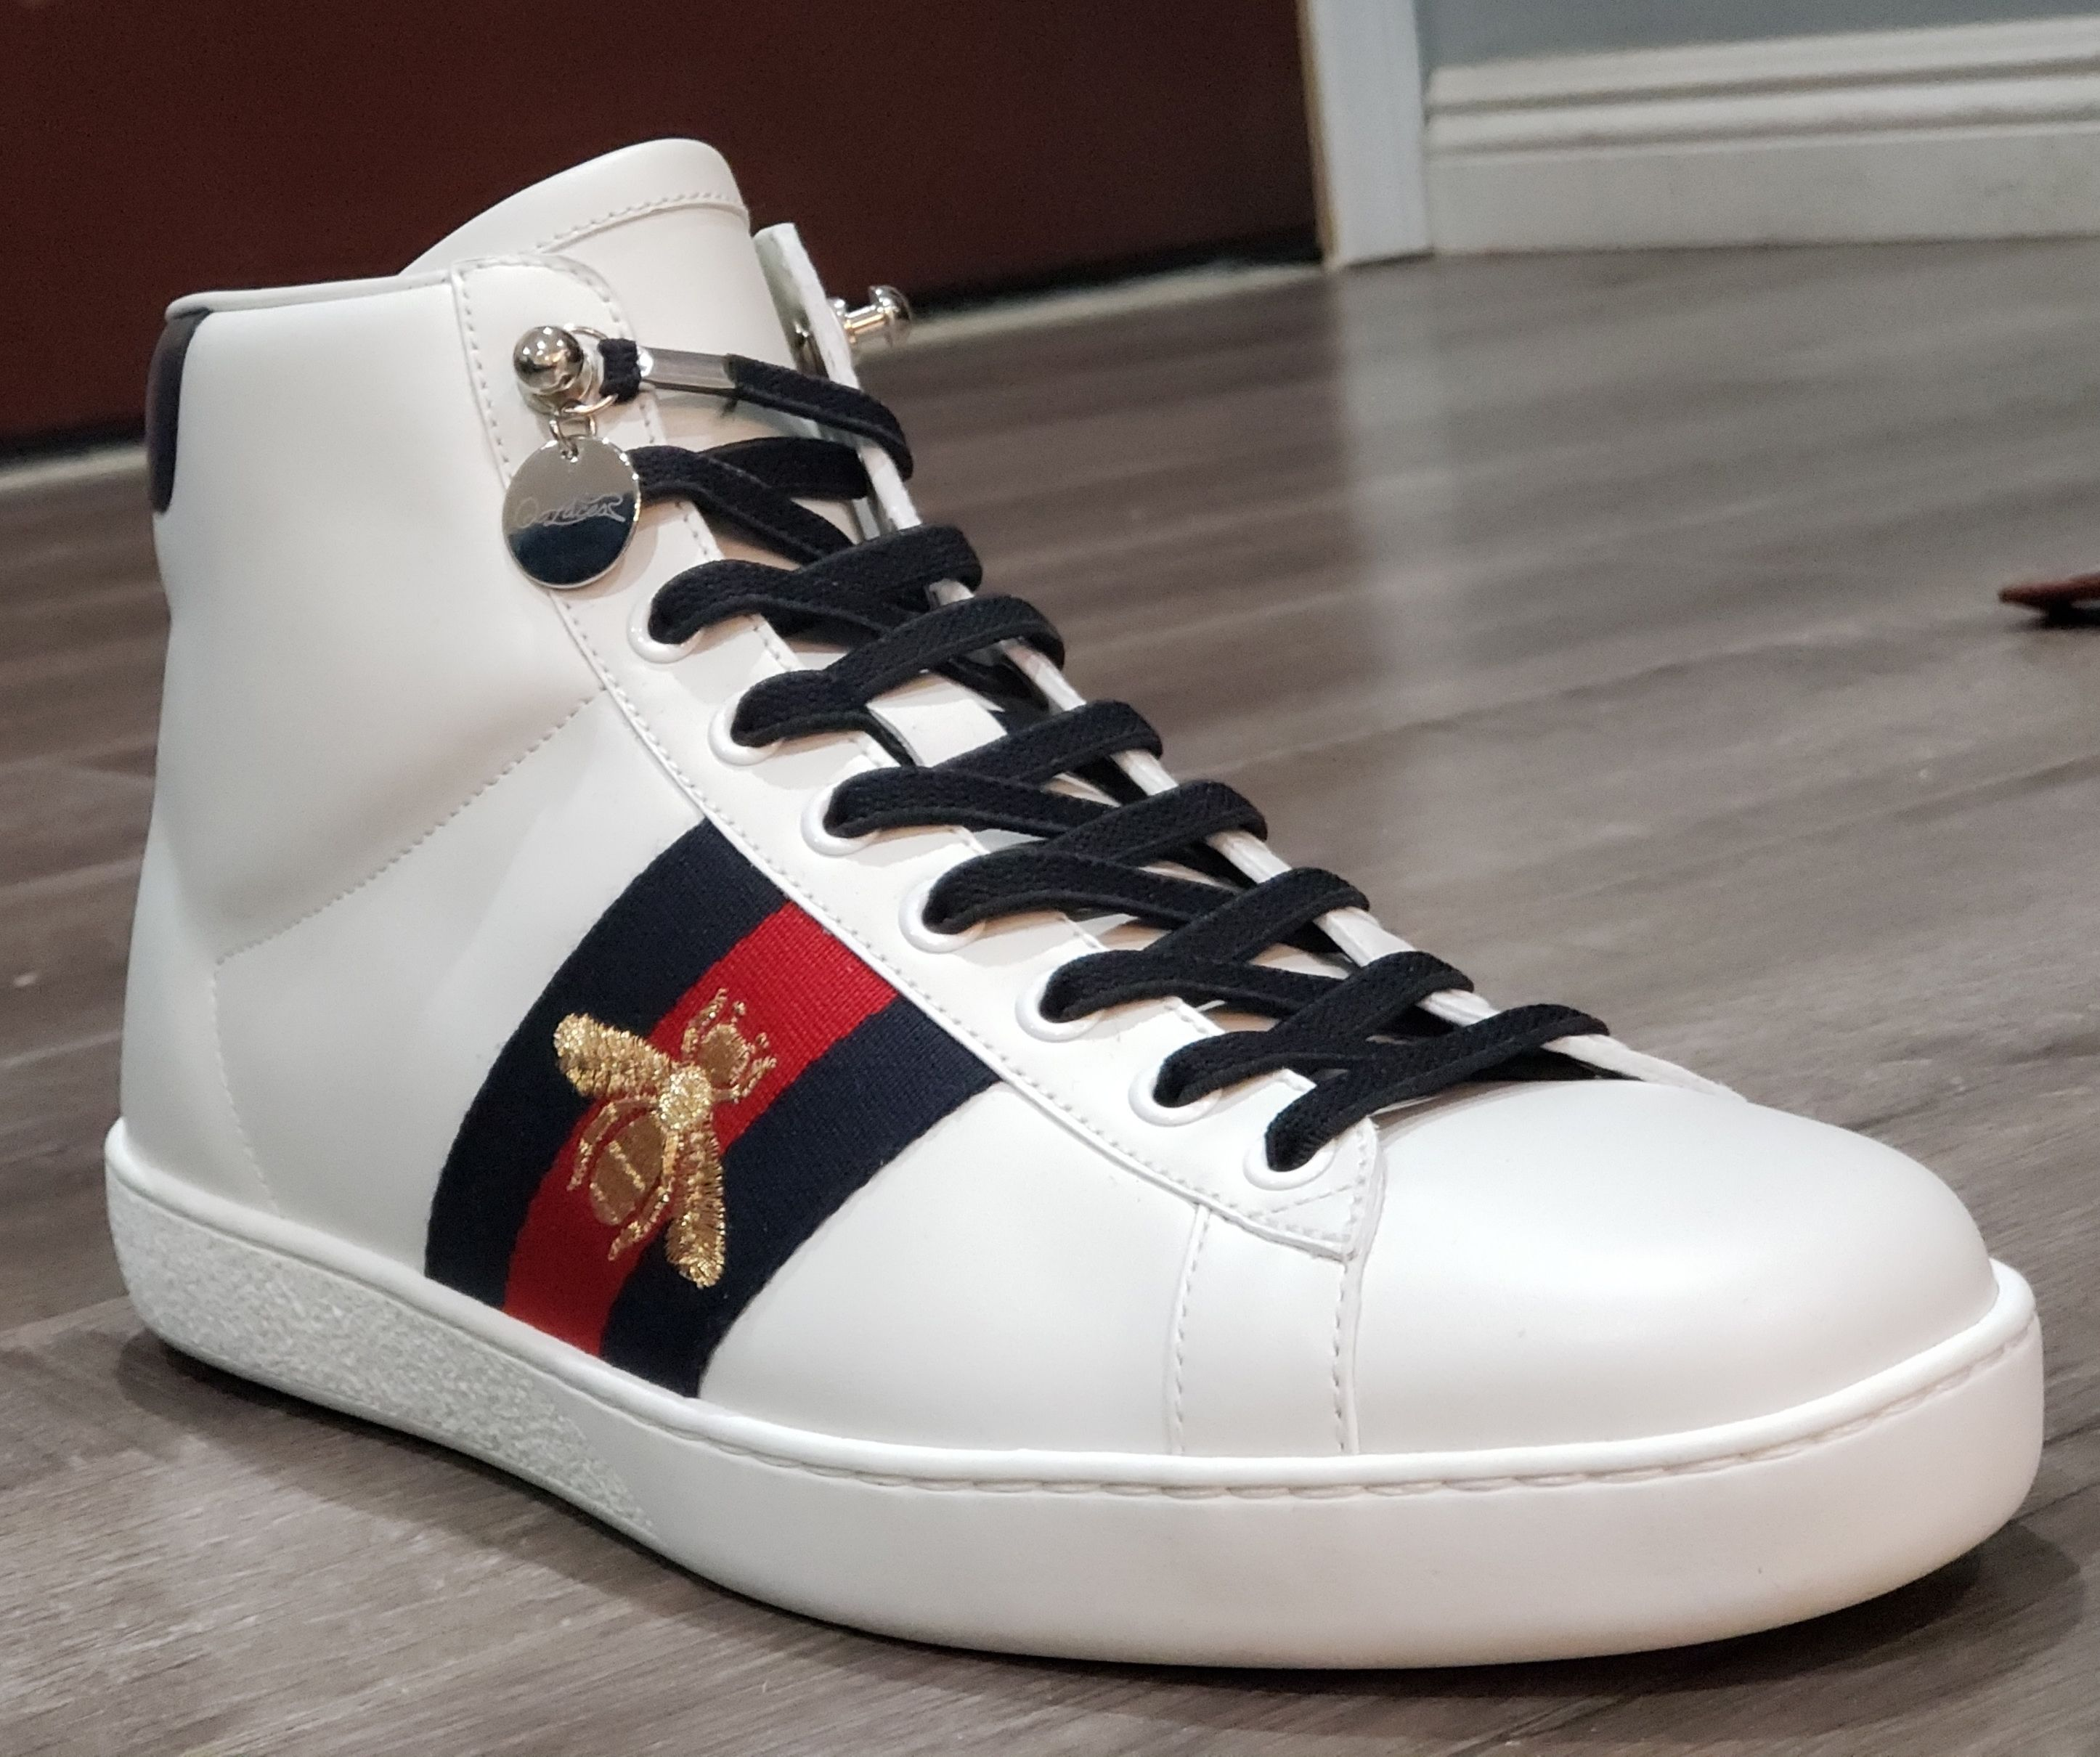 db223fa93 No Tie Shoelaces on Gucci High Top Sneaker for Men | No Tie ...